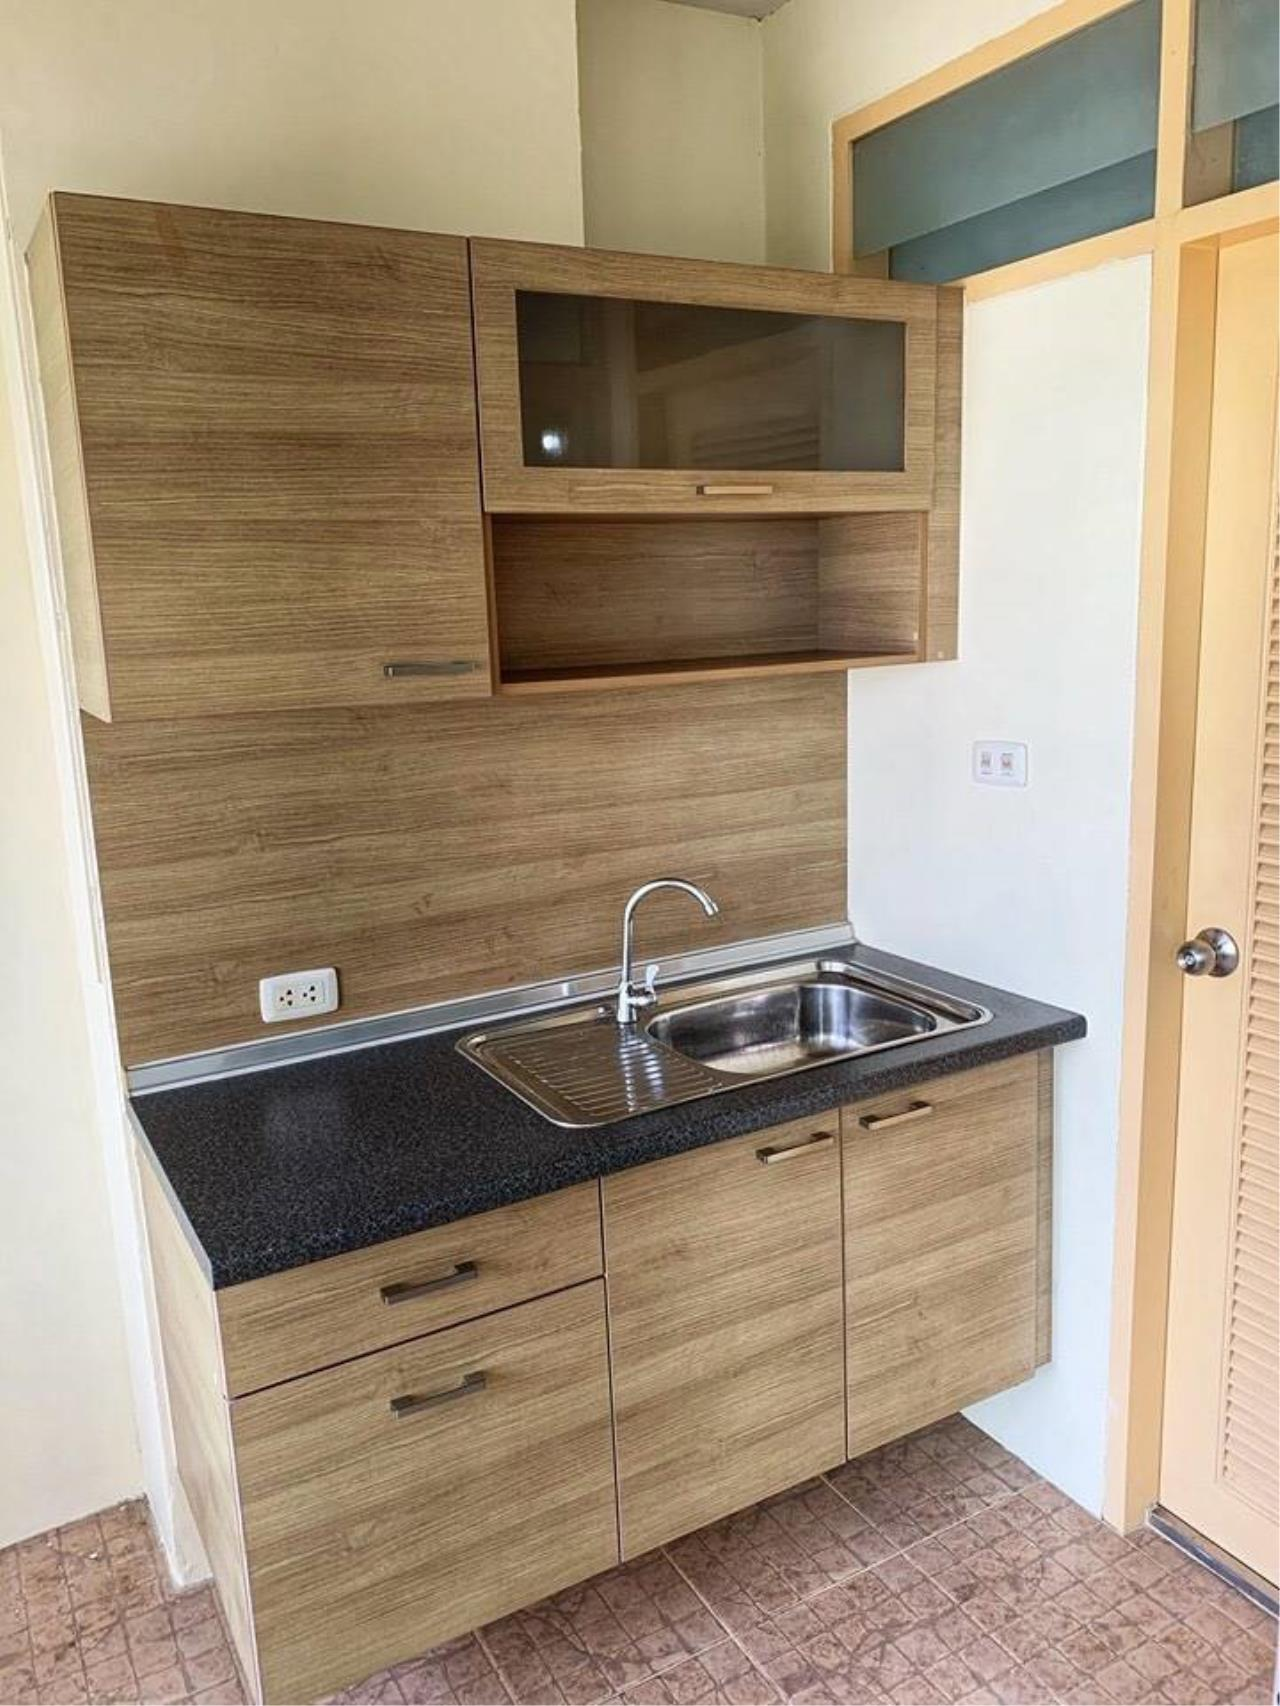 First Choice Properties by Su Agent Agency's KP037 RATCHADA CITY 18 for sale 1.87 M. 1bedroom. 34 sq.m. @MRT Huai Khwang 11